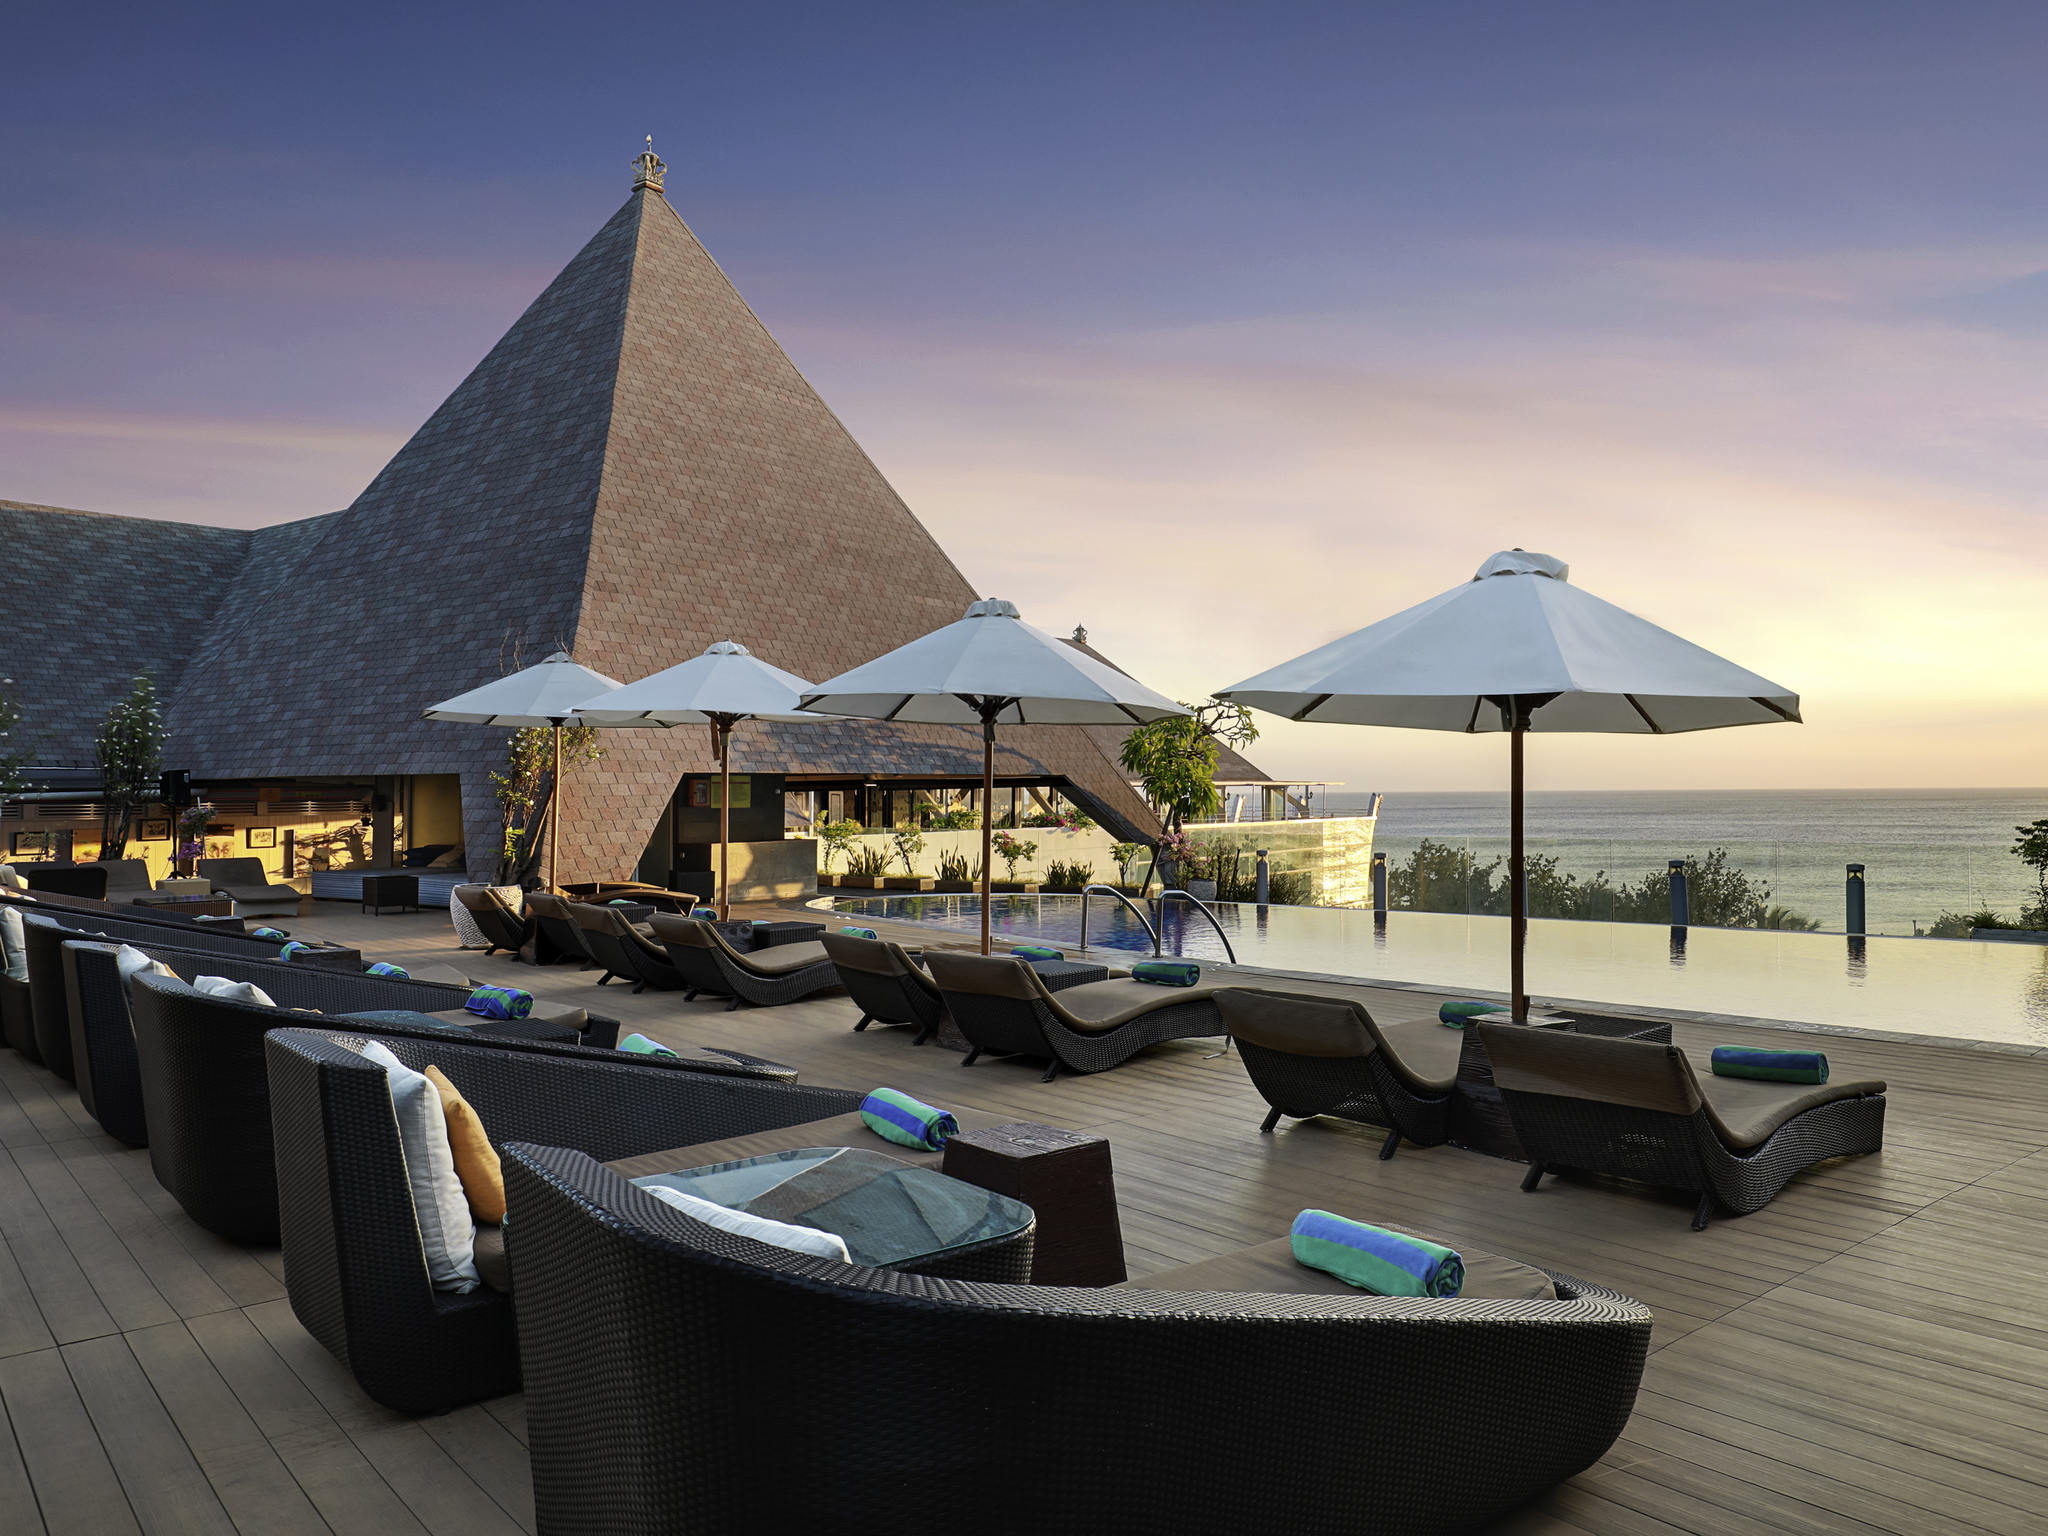 Hotel – The Kuta Beach Heritage Hotel Bali - Managed by AccorHotels